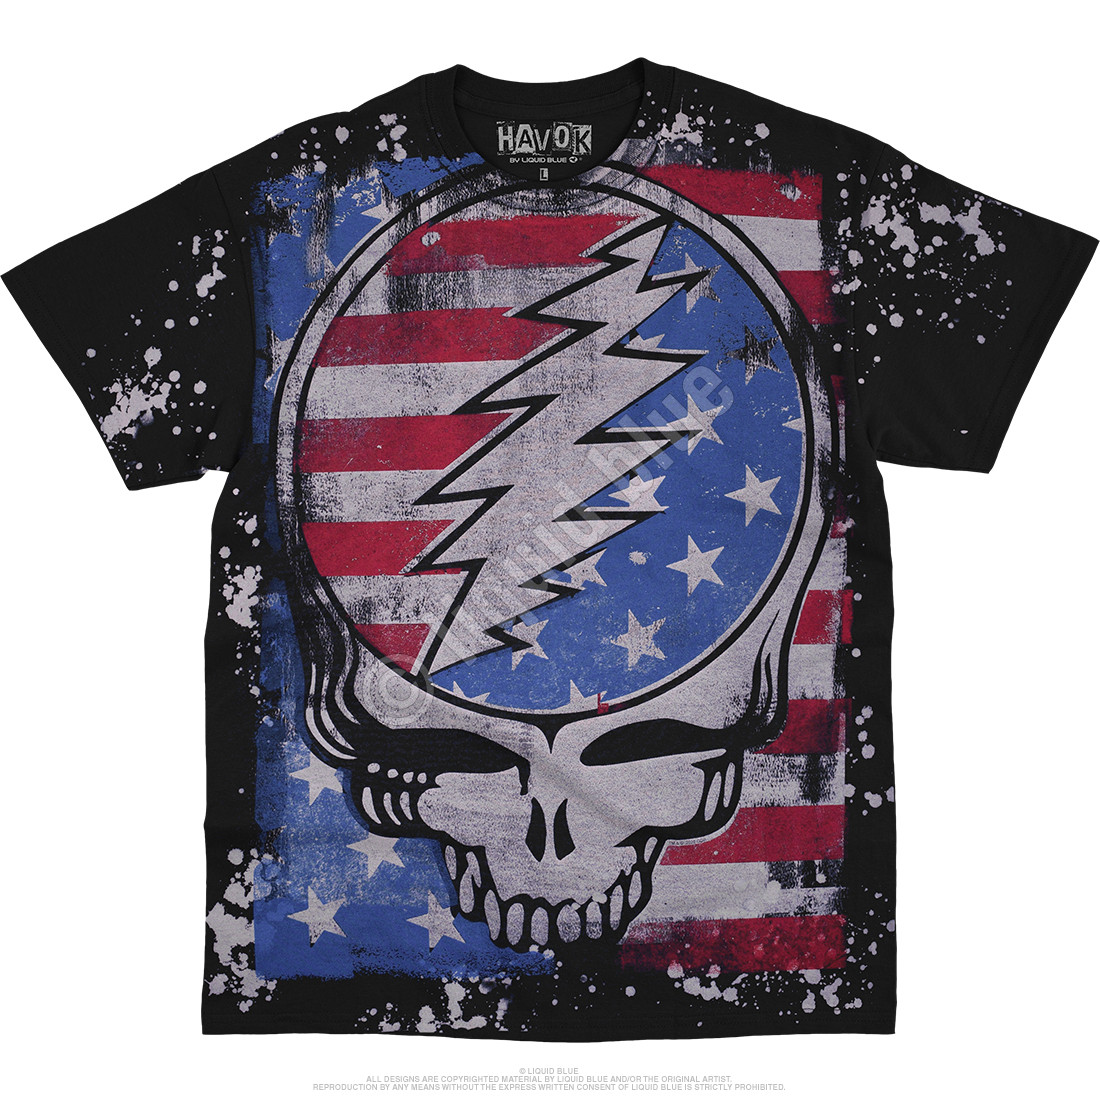 True Blue SYF Havok Black T-Shirt